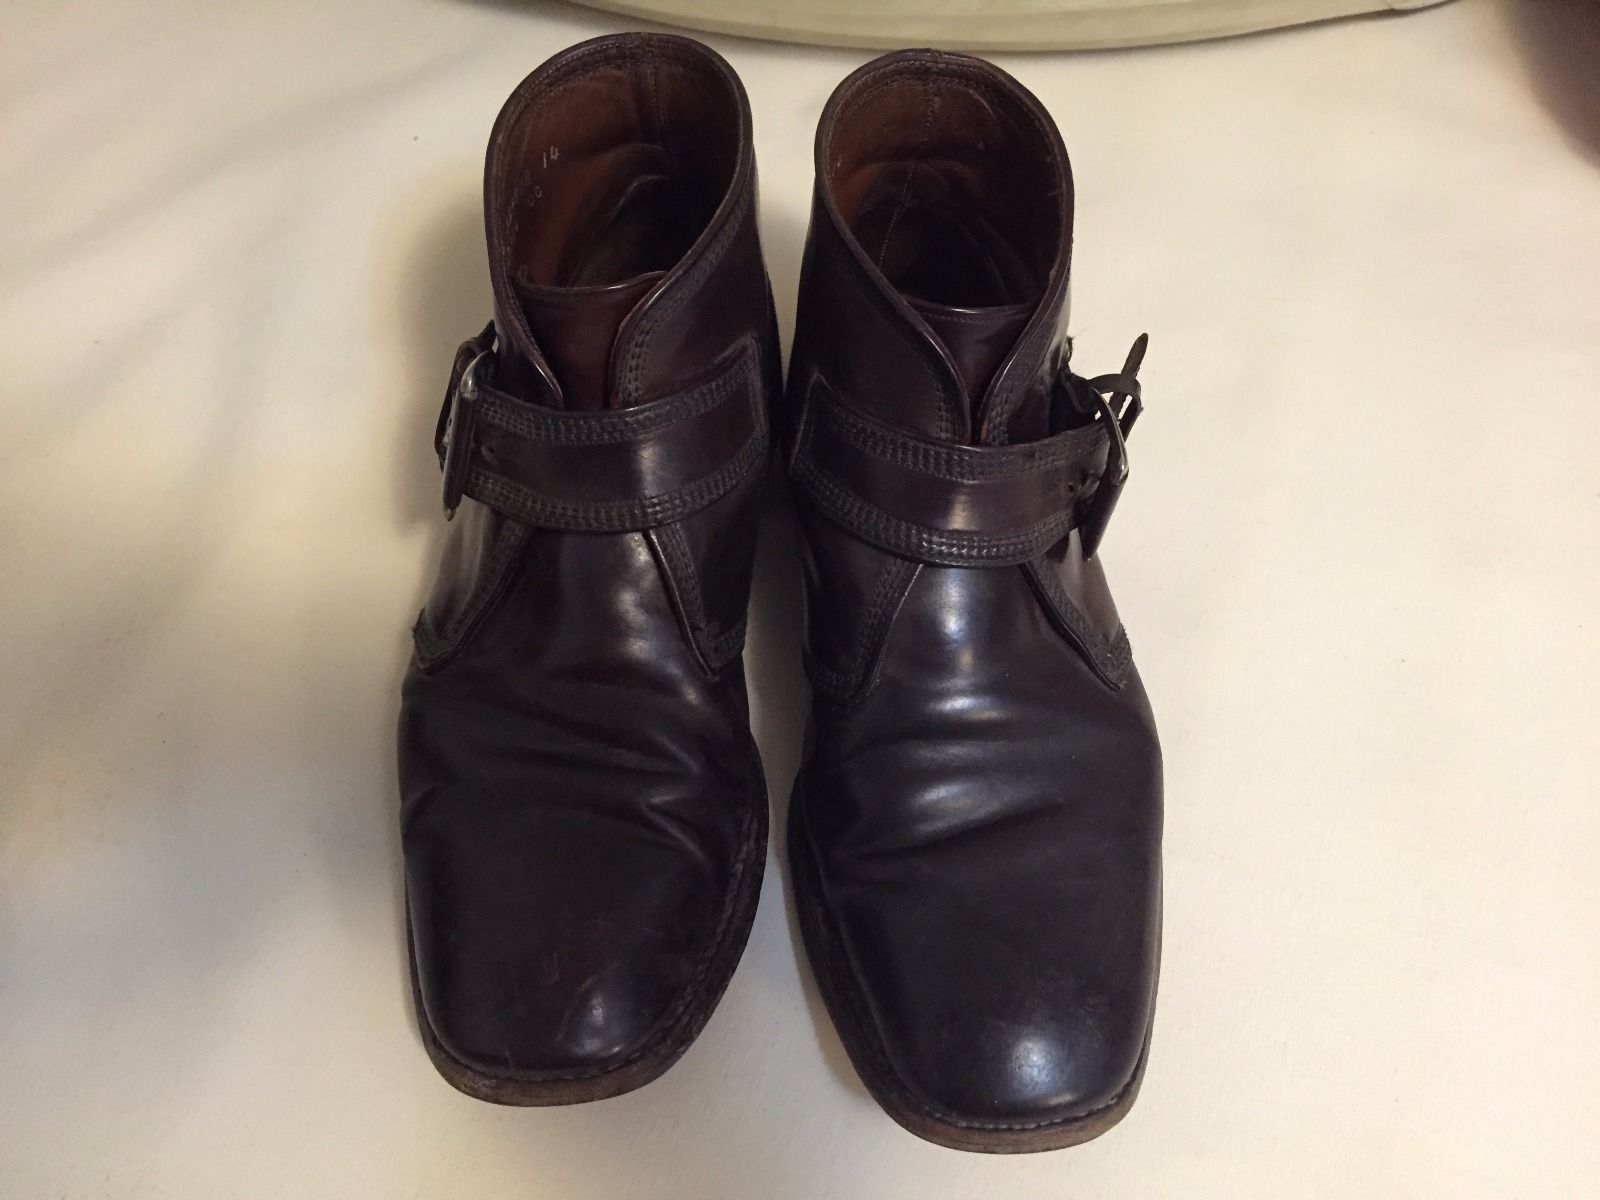 Florsheim Imperial Shell Cordovan Boot